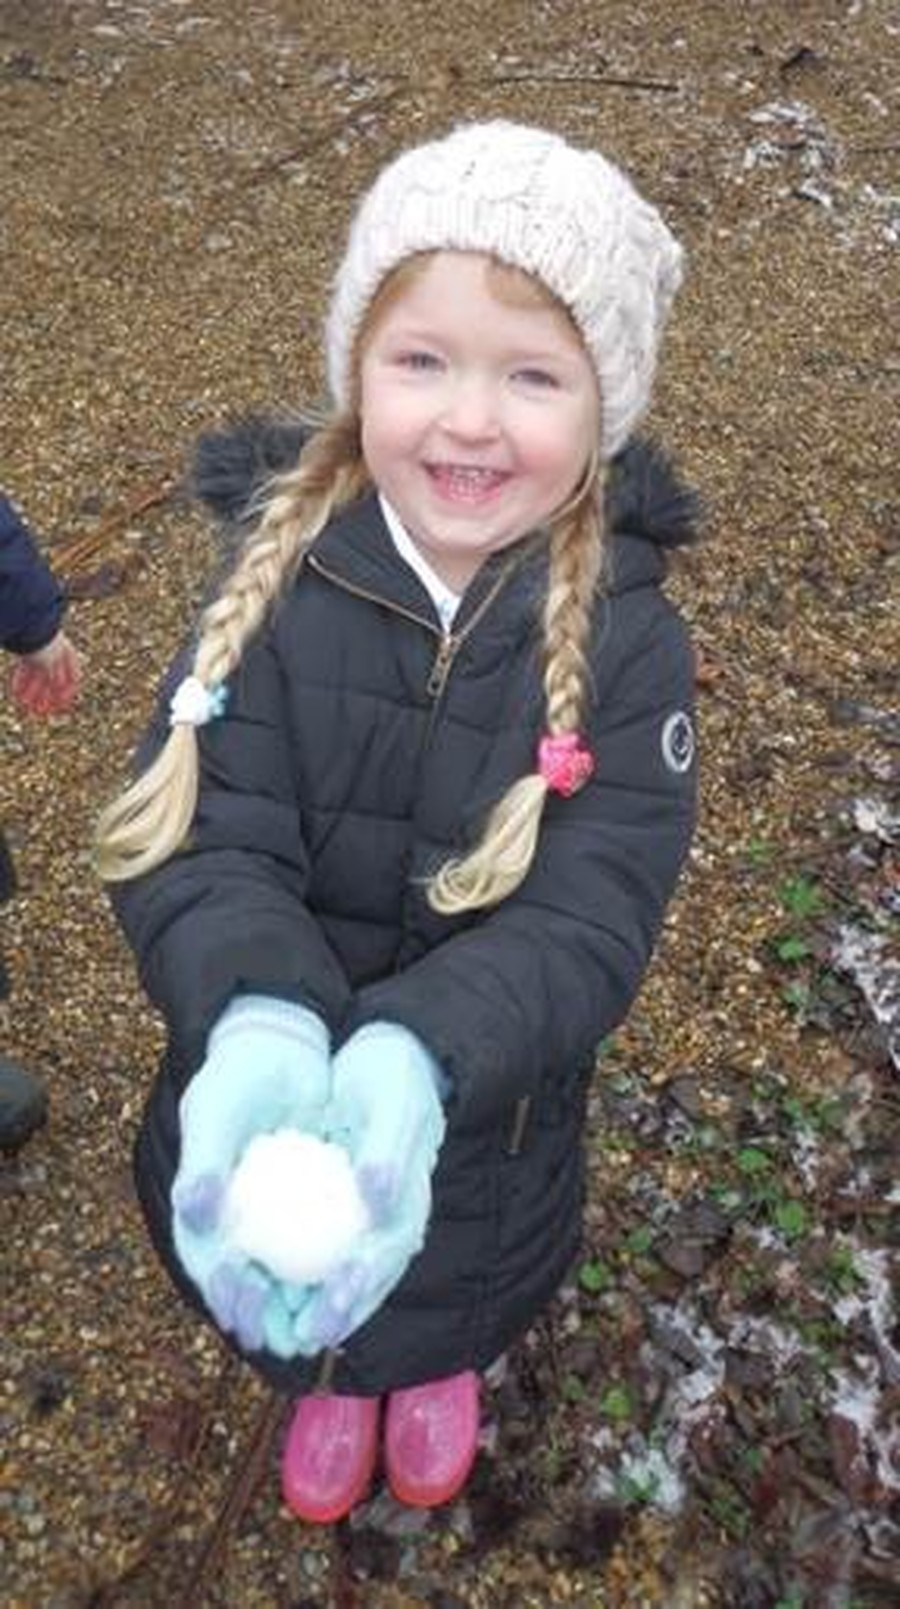 We had fun in the snow. We observed it throughout the day and watched it melt.